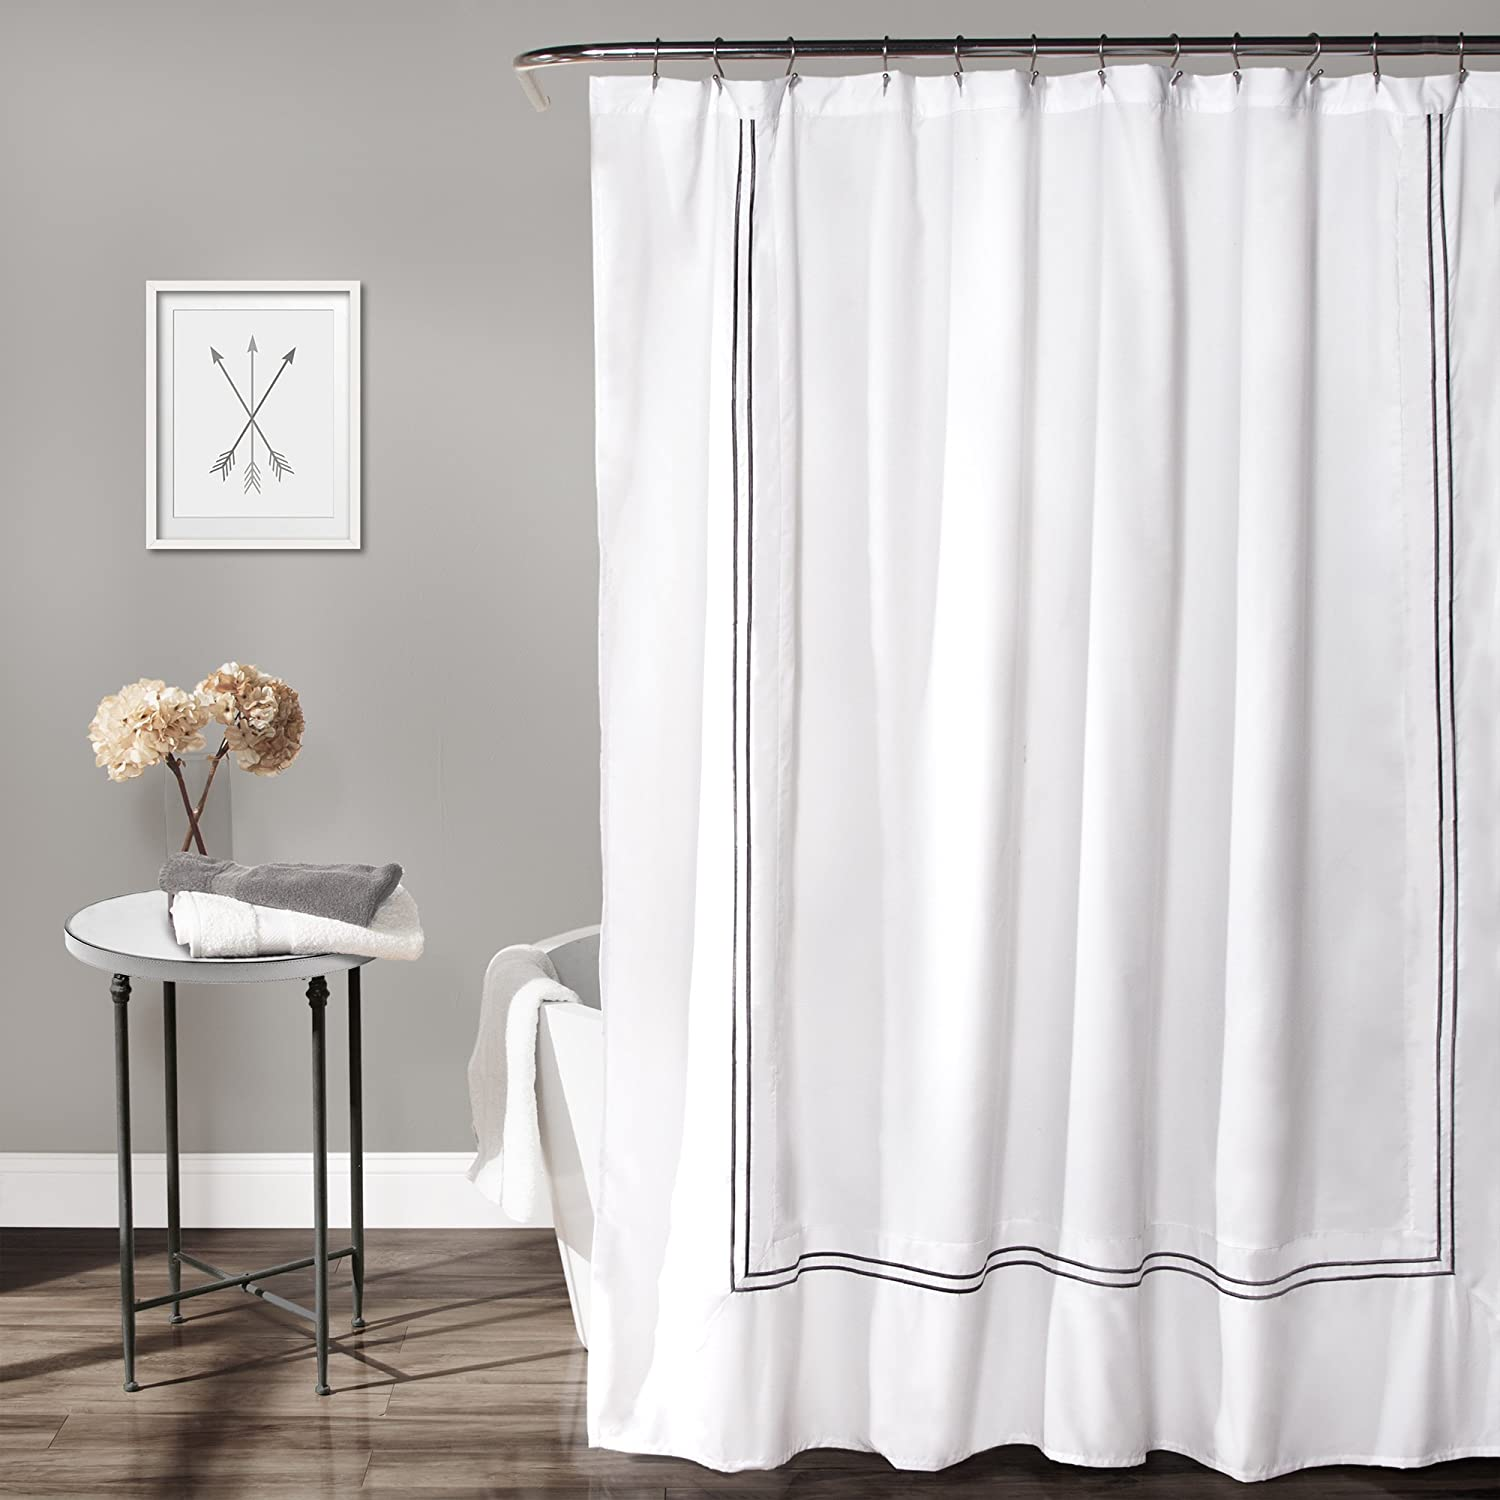 world gwfp cream curtains monogrammed il white fullxfull historical shower map zoom listing curtain on